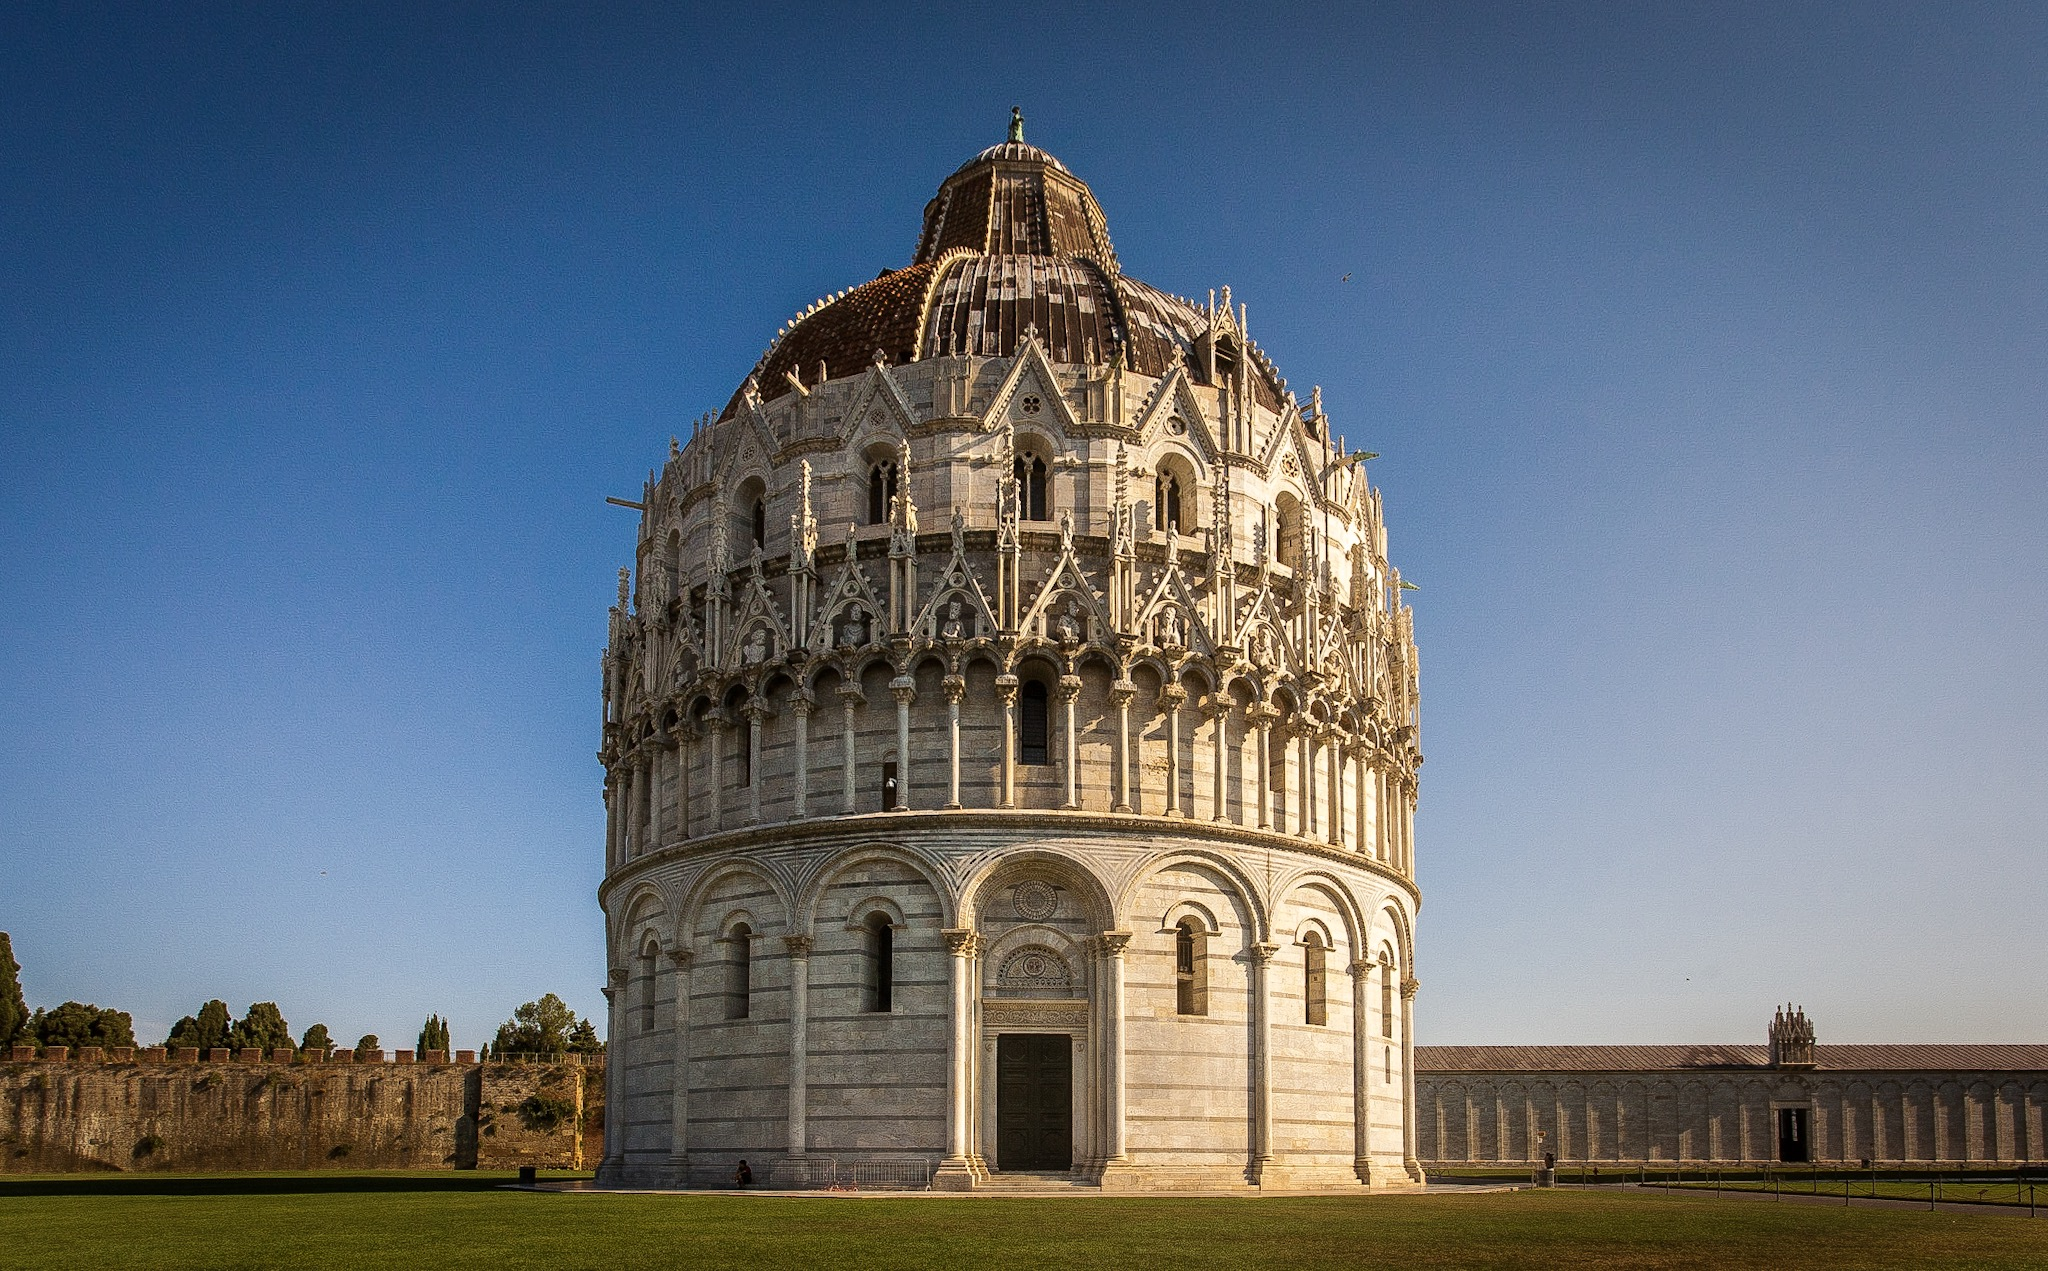 Battistero di San Giovanni in Pisa by Rick McEvoy Architectural Photographer